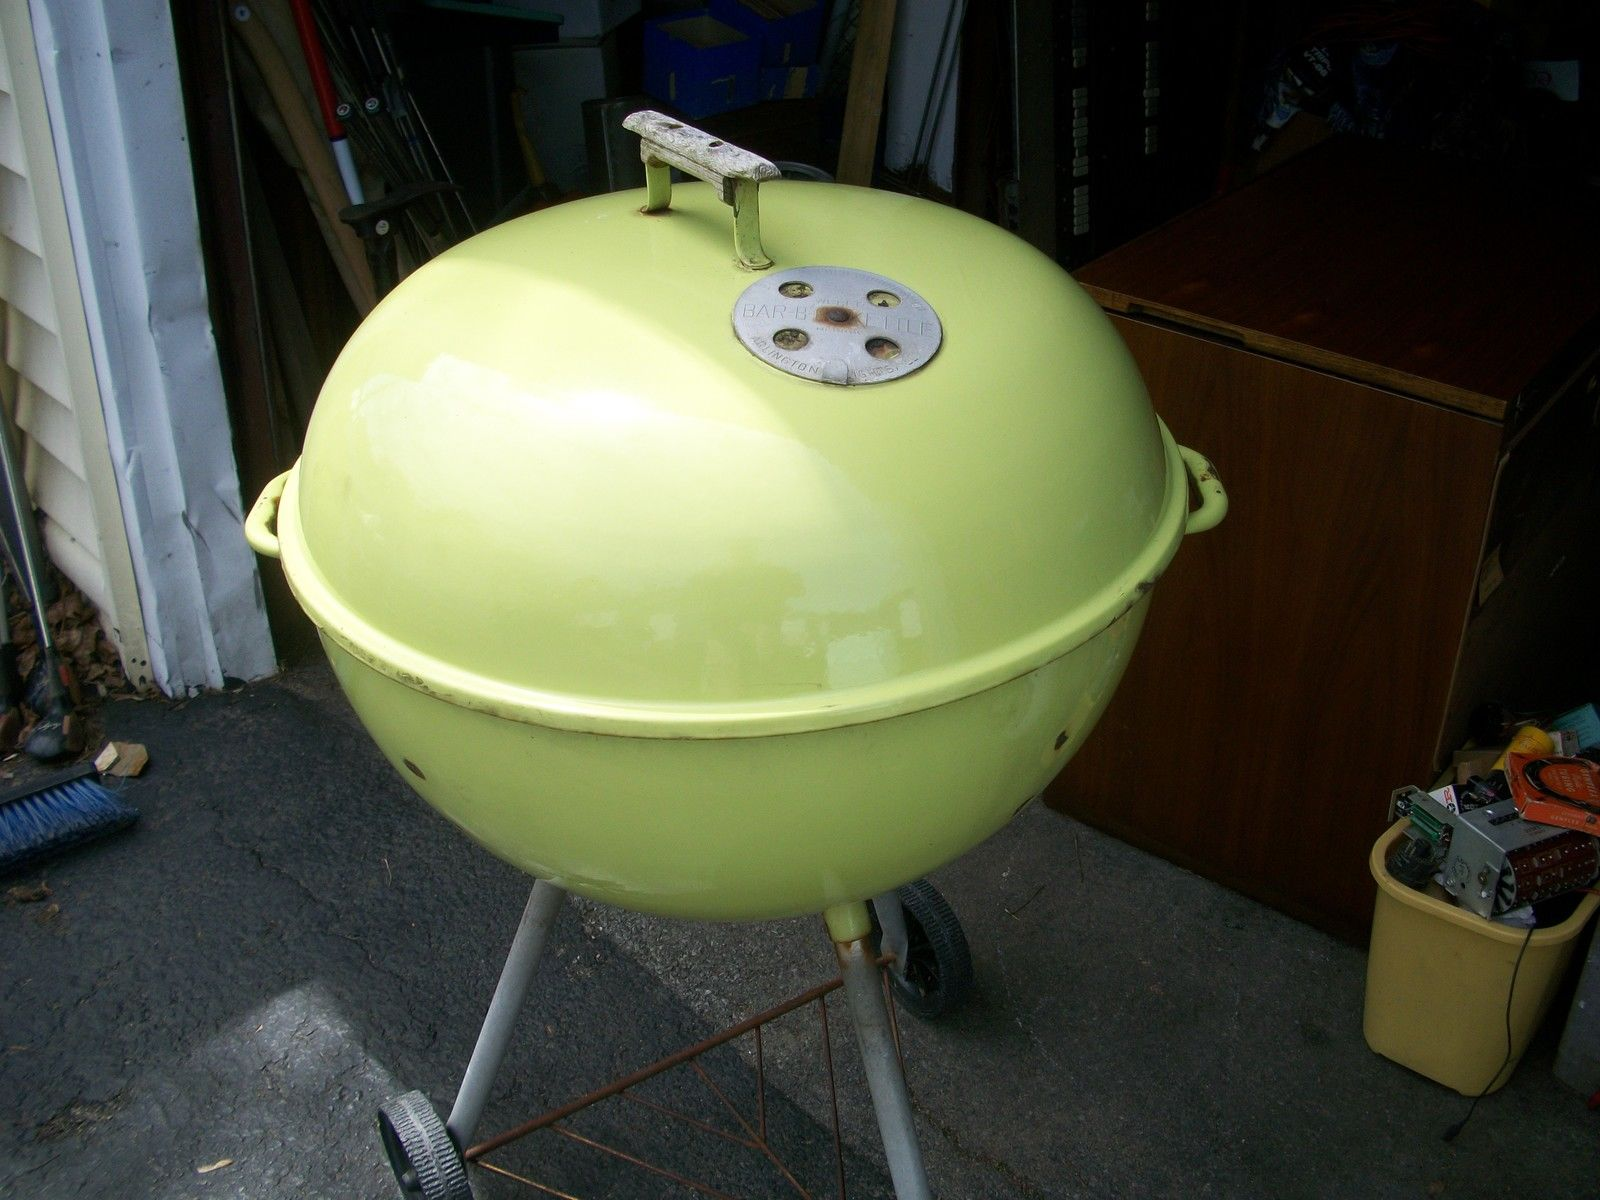 The finish of this Lime green weber looks to be in pretty good shape!